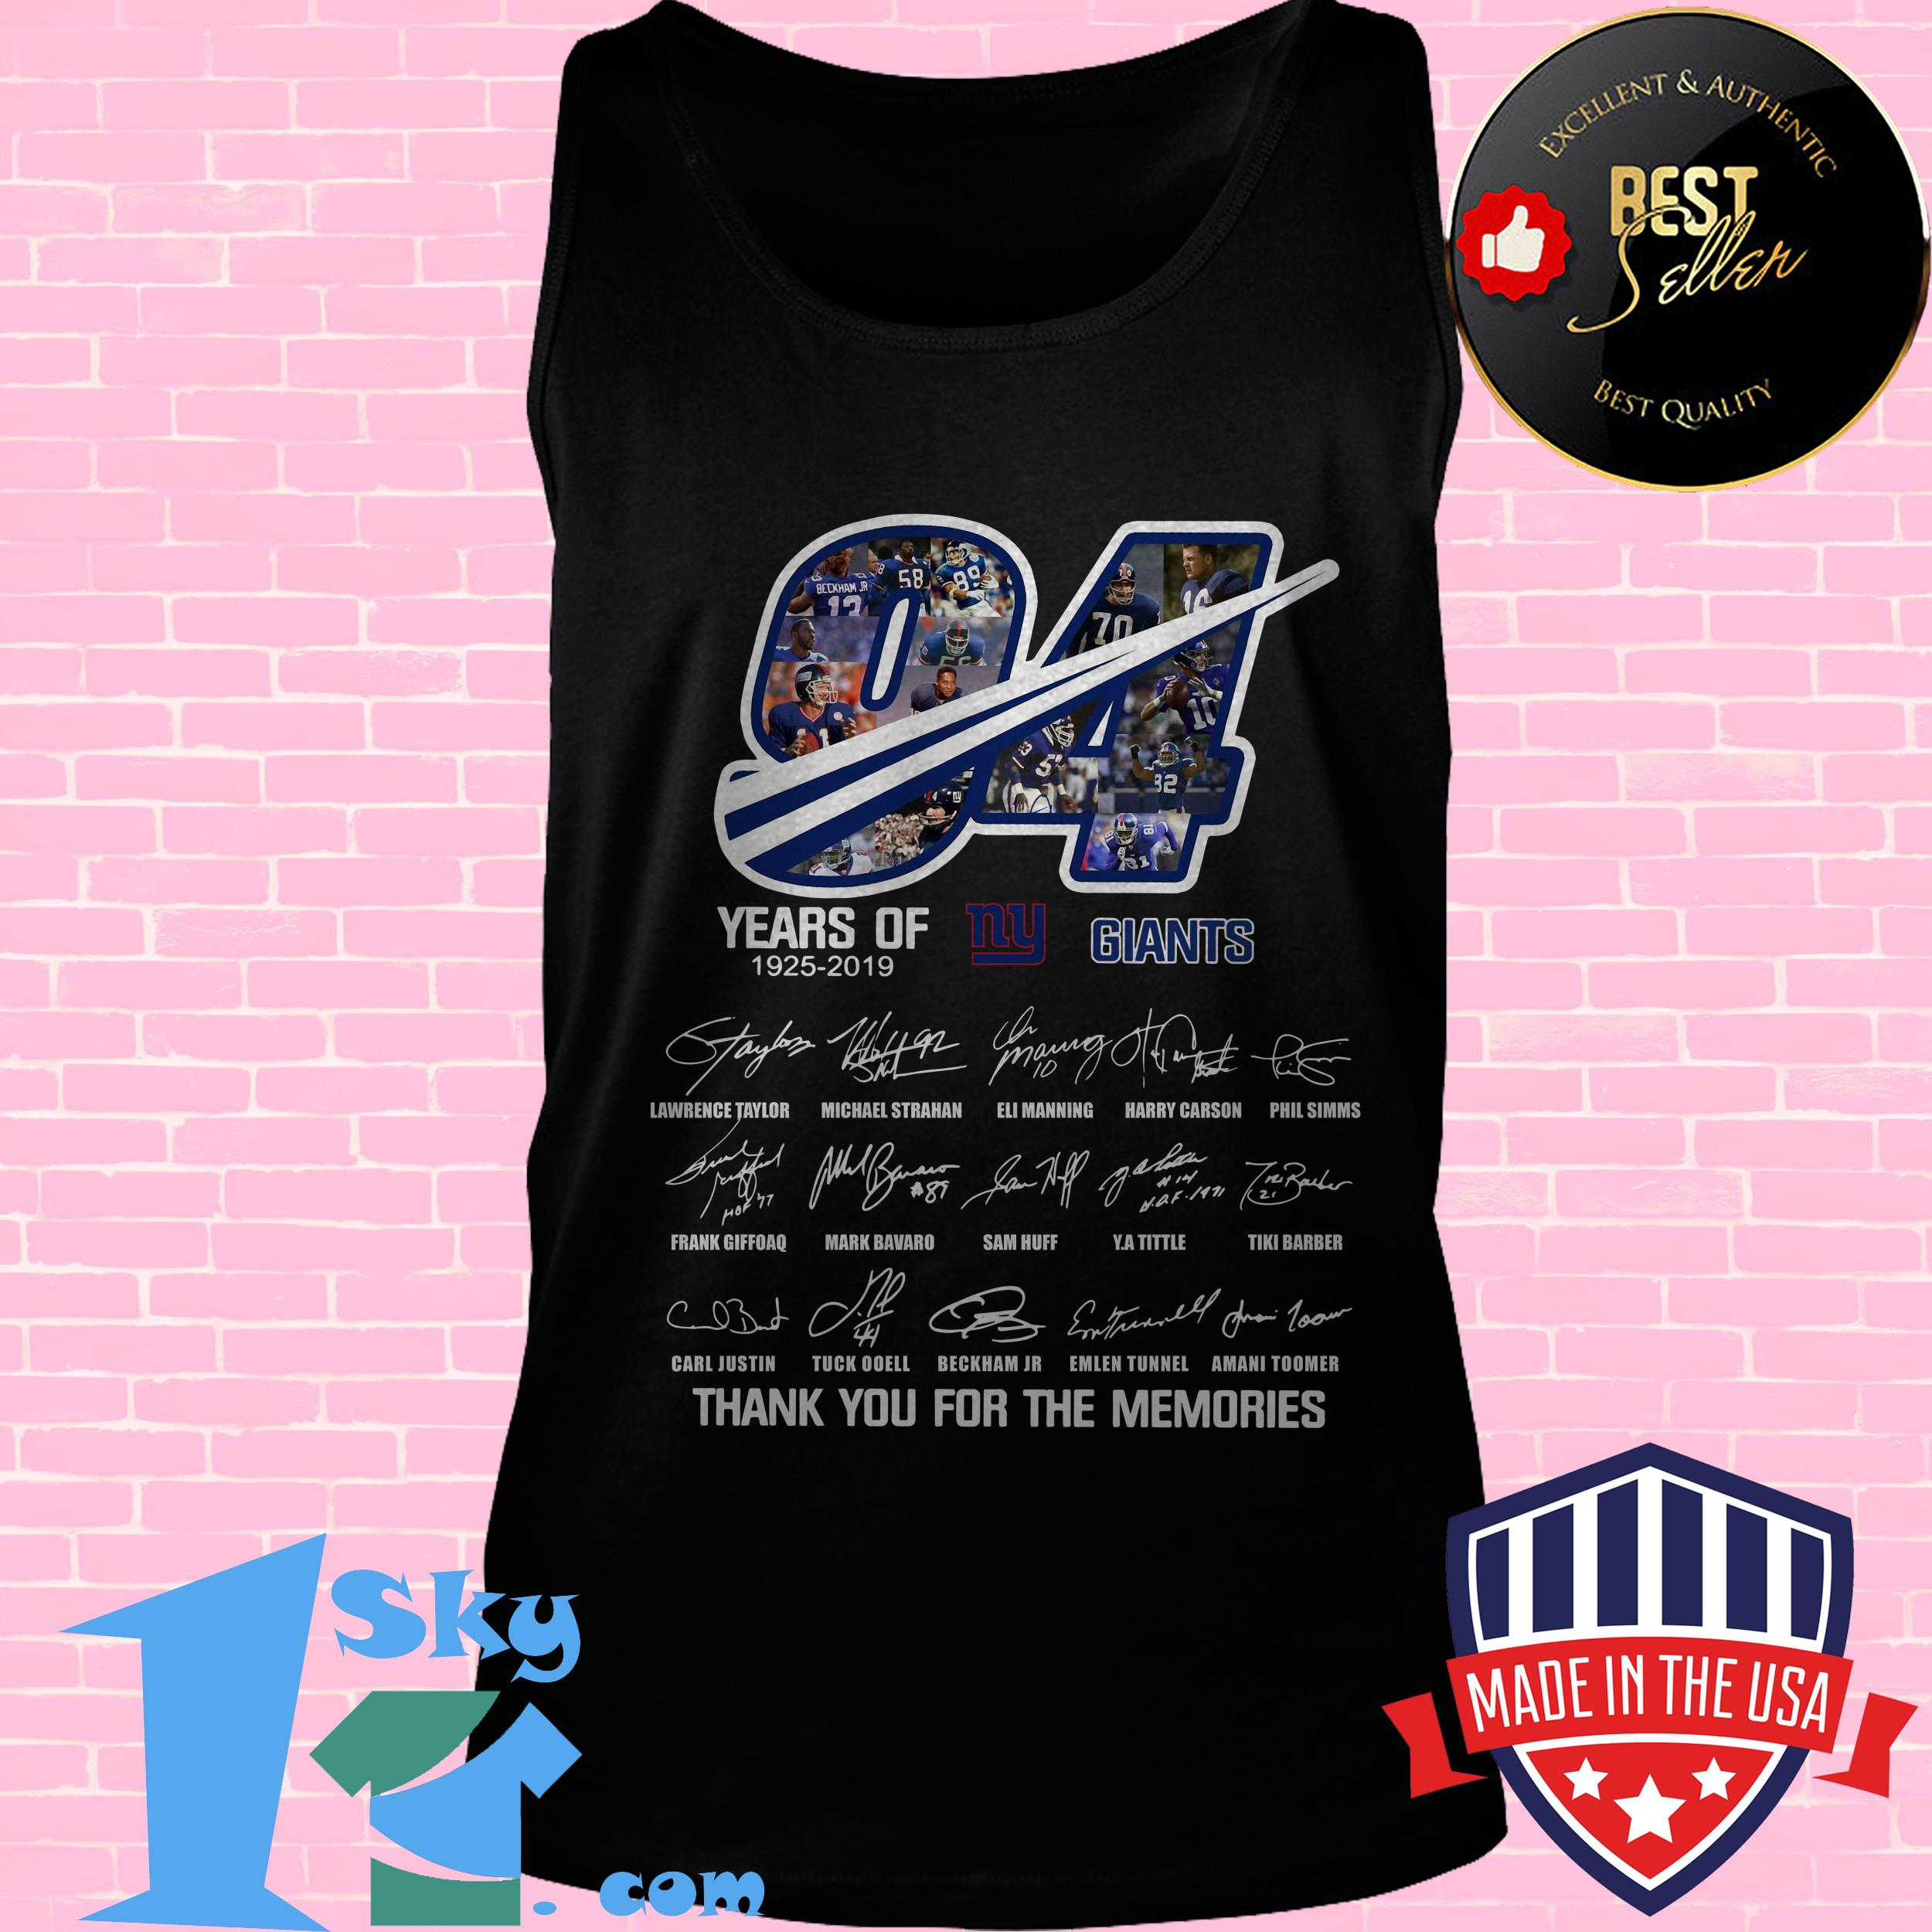 94 years of ny giants 1925 2019 thank you for the memories signature tank top - 94 Years Of NY Giants 1925 2019 Thank you For the Memories Signature shirt